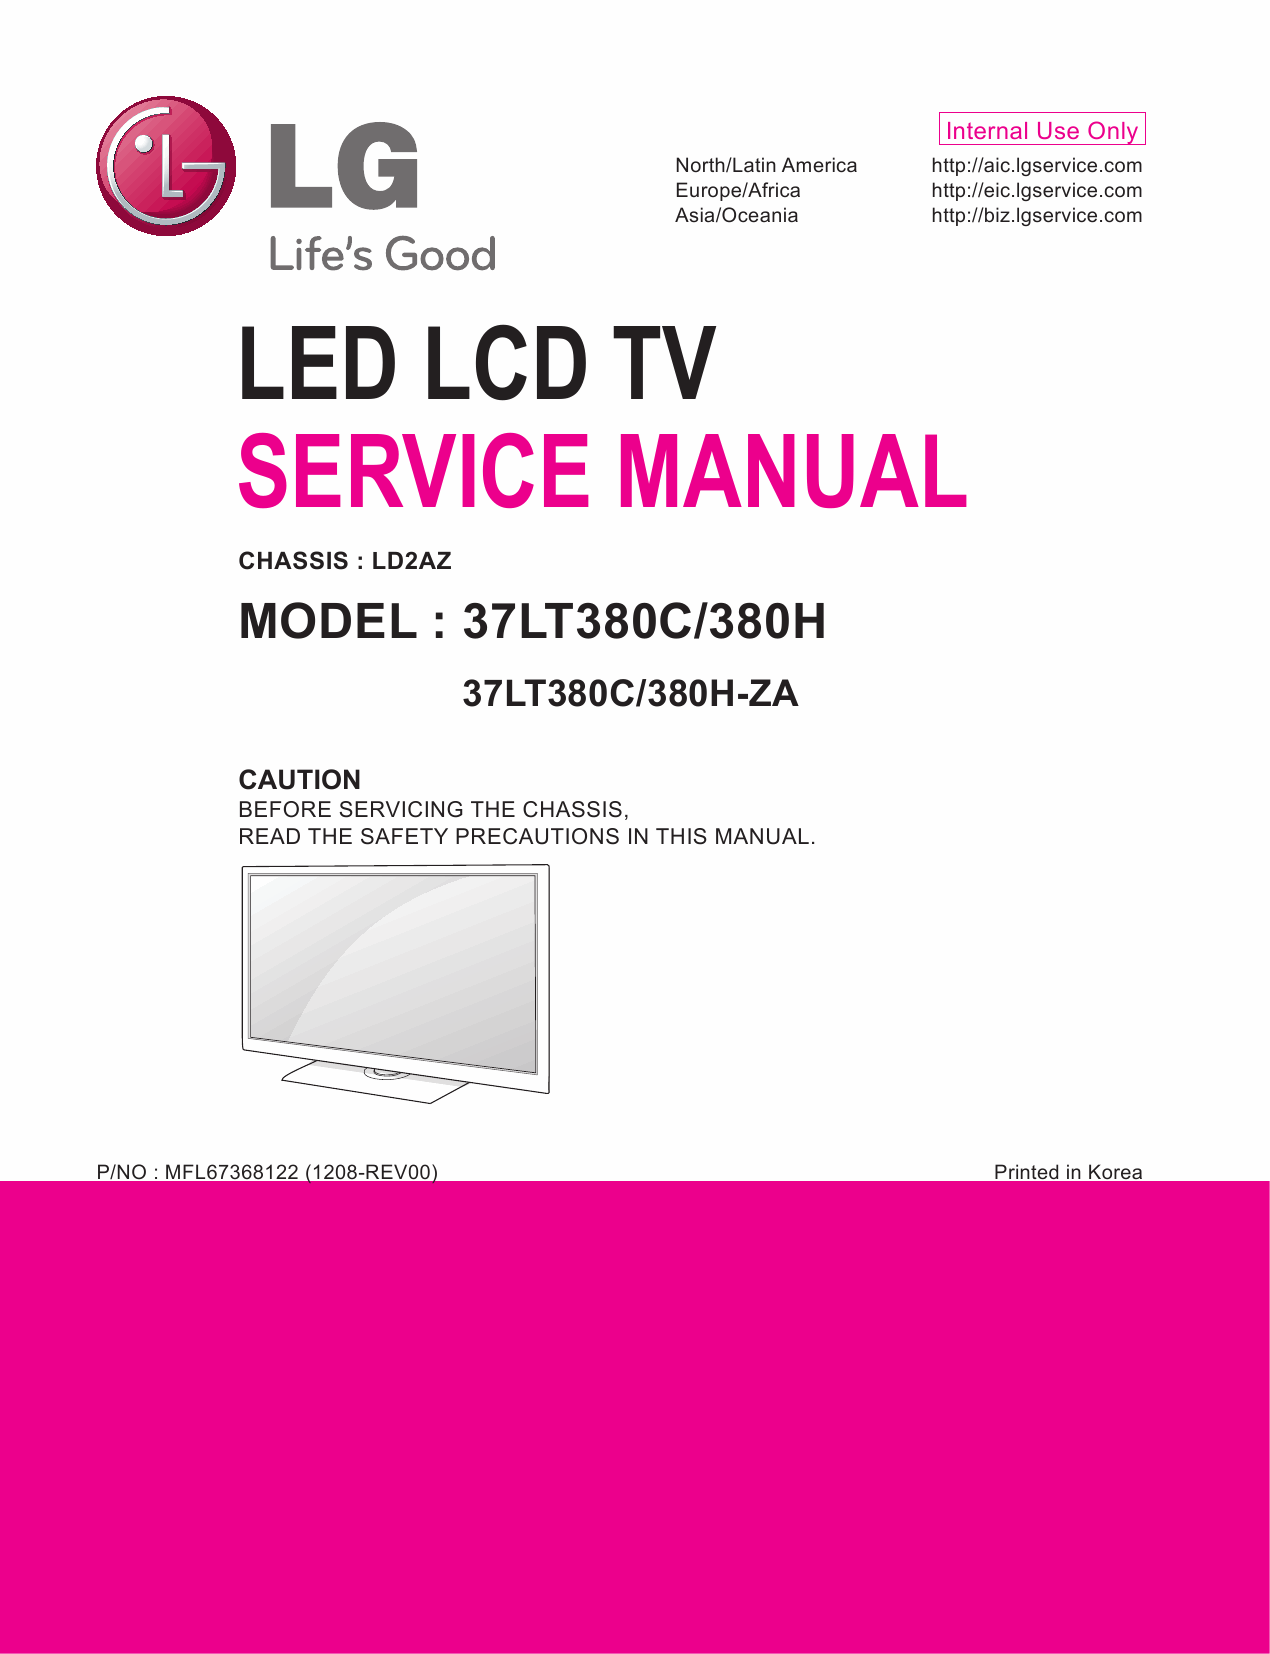 LG_LED_TV_37LT380C_380H_Service_Manual_2012_Qmanual.com-1